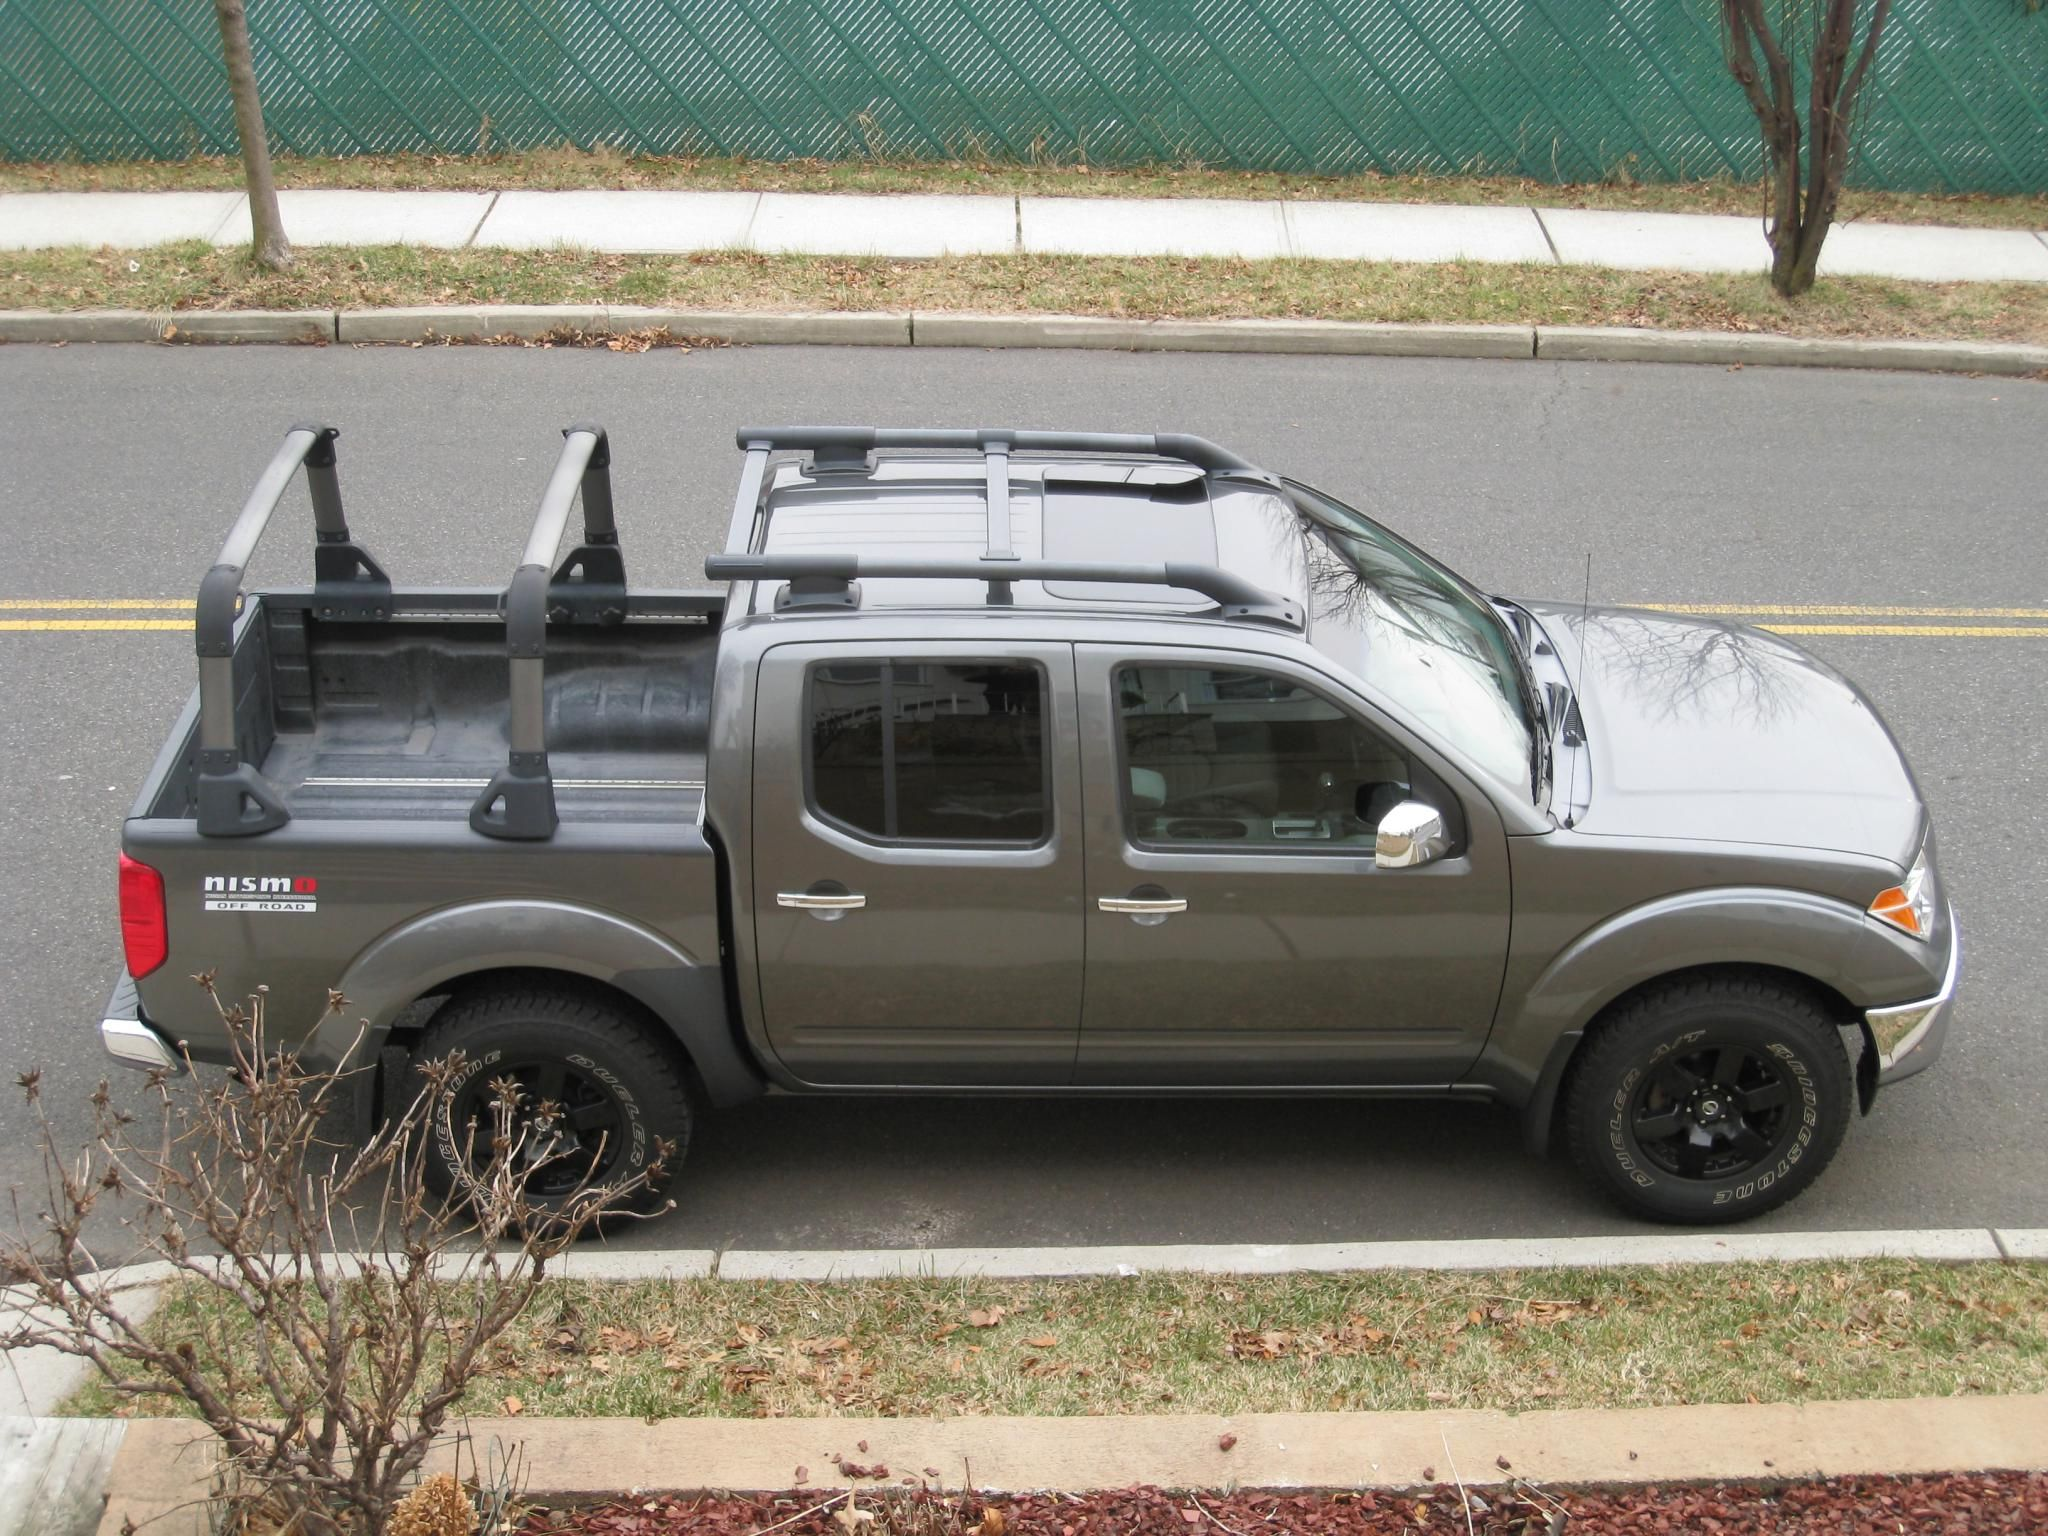 hight resolution of very good looking nissan frontier with bed rack and roof rack